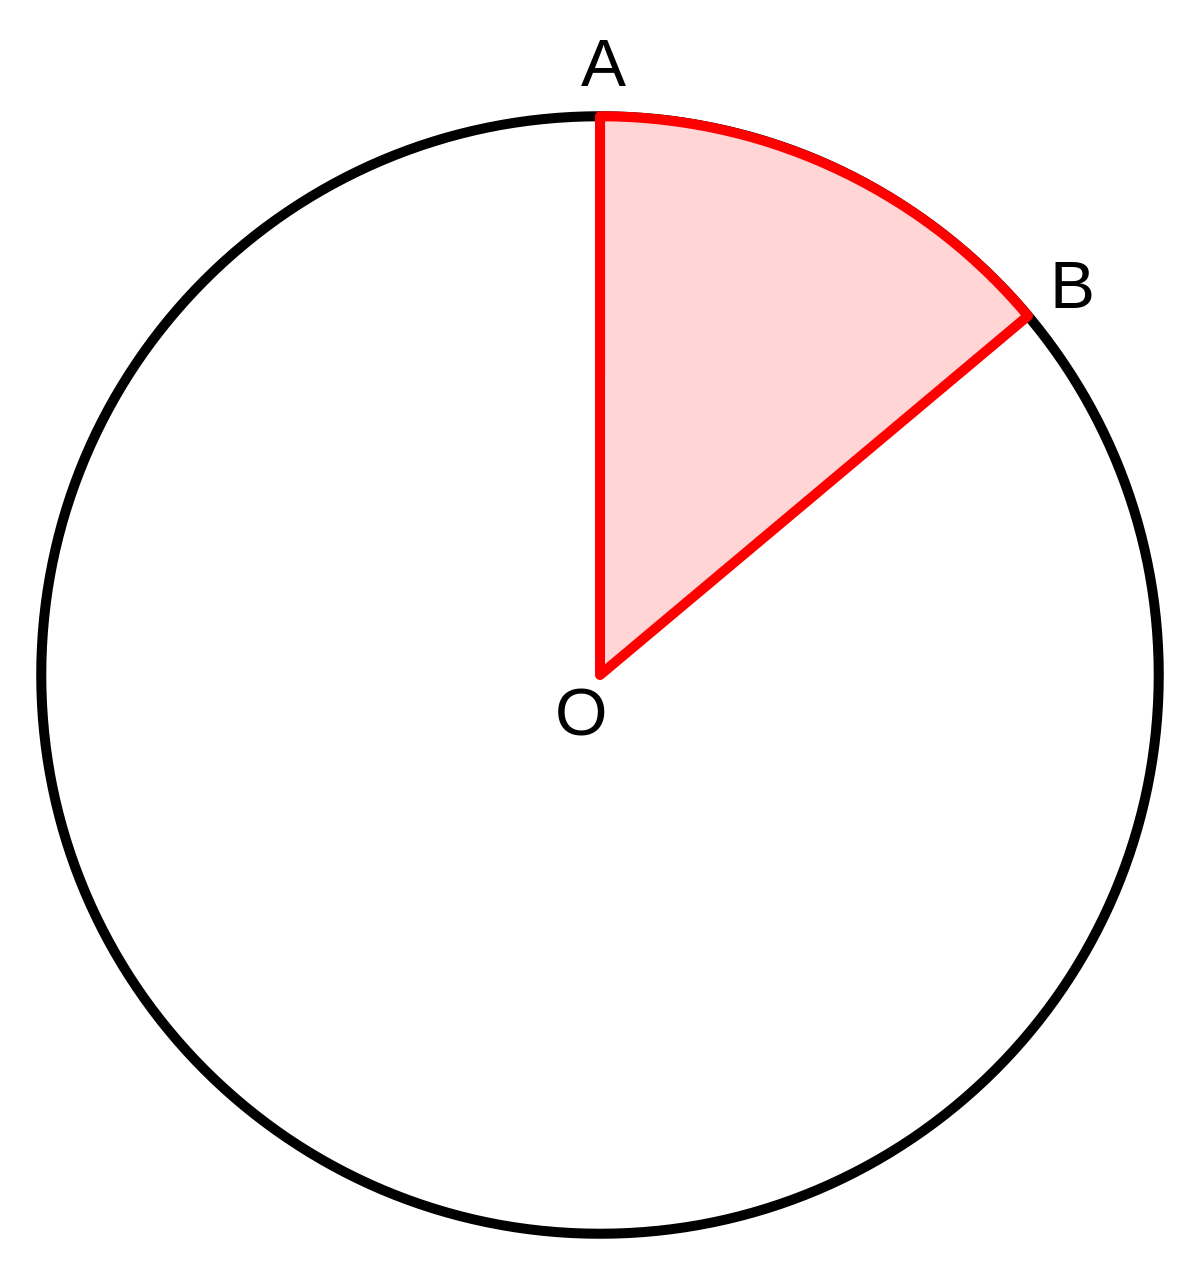 Drawing arcs angle. Central wikipedia